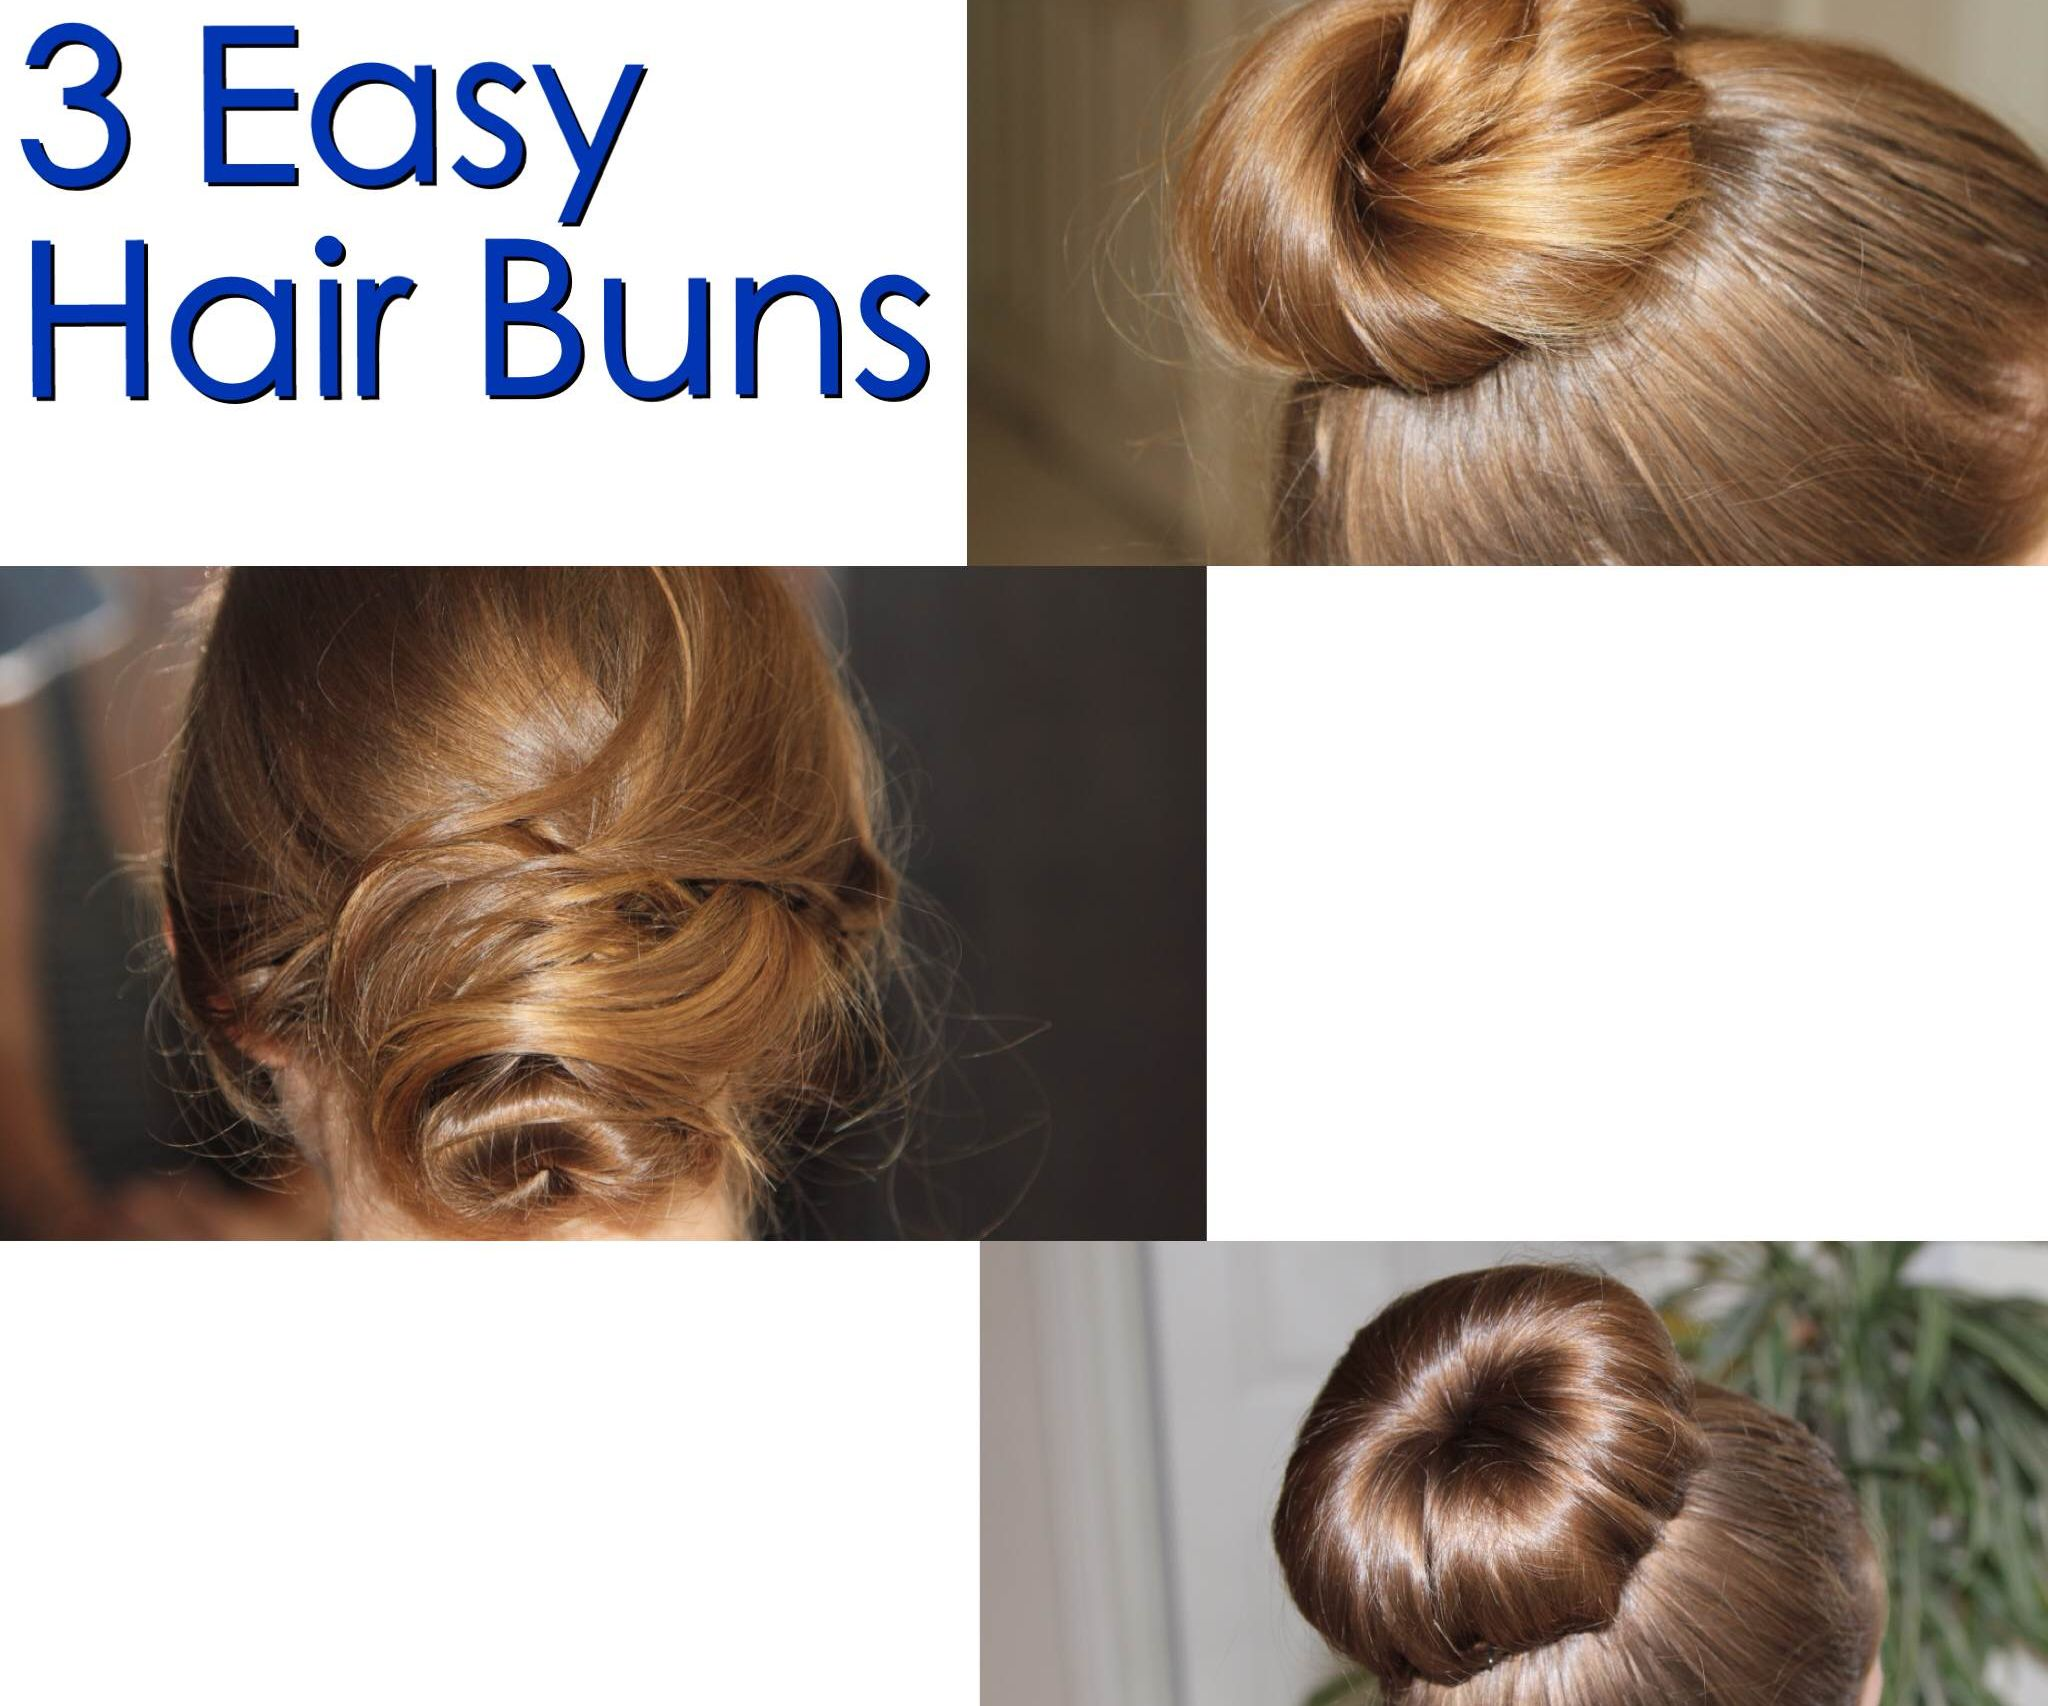 12 Easy Hair Buns : 12 Steps (with Pictures) - Instructables